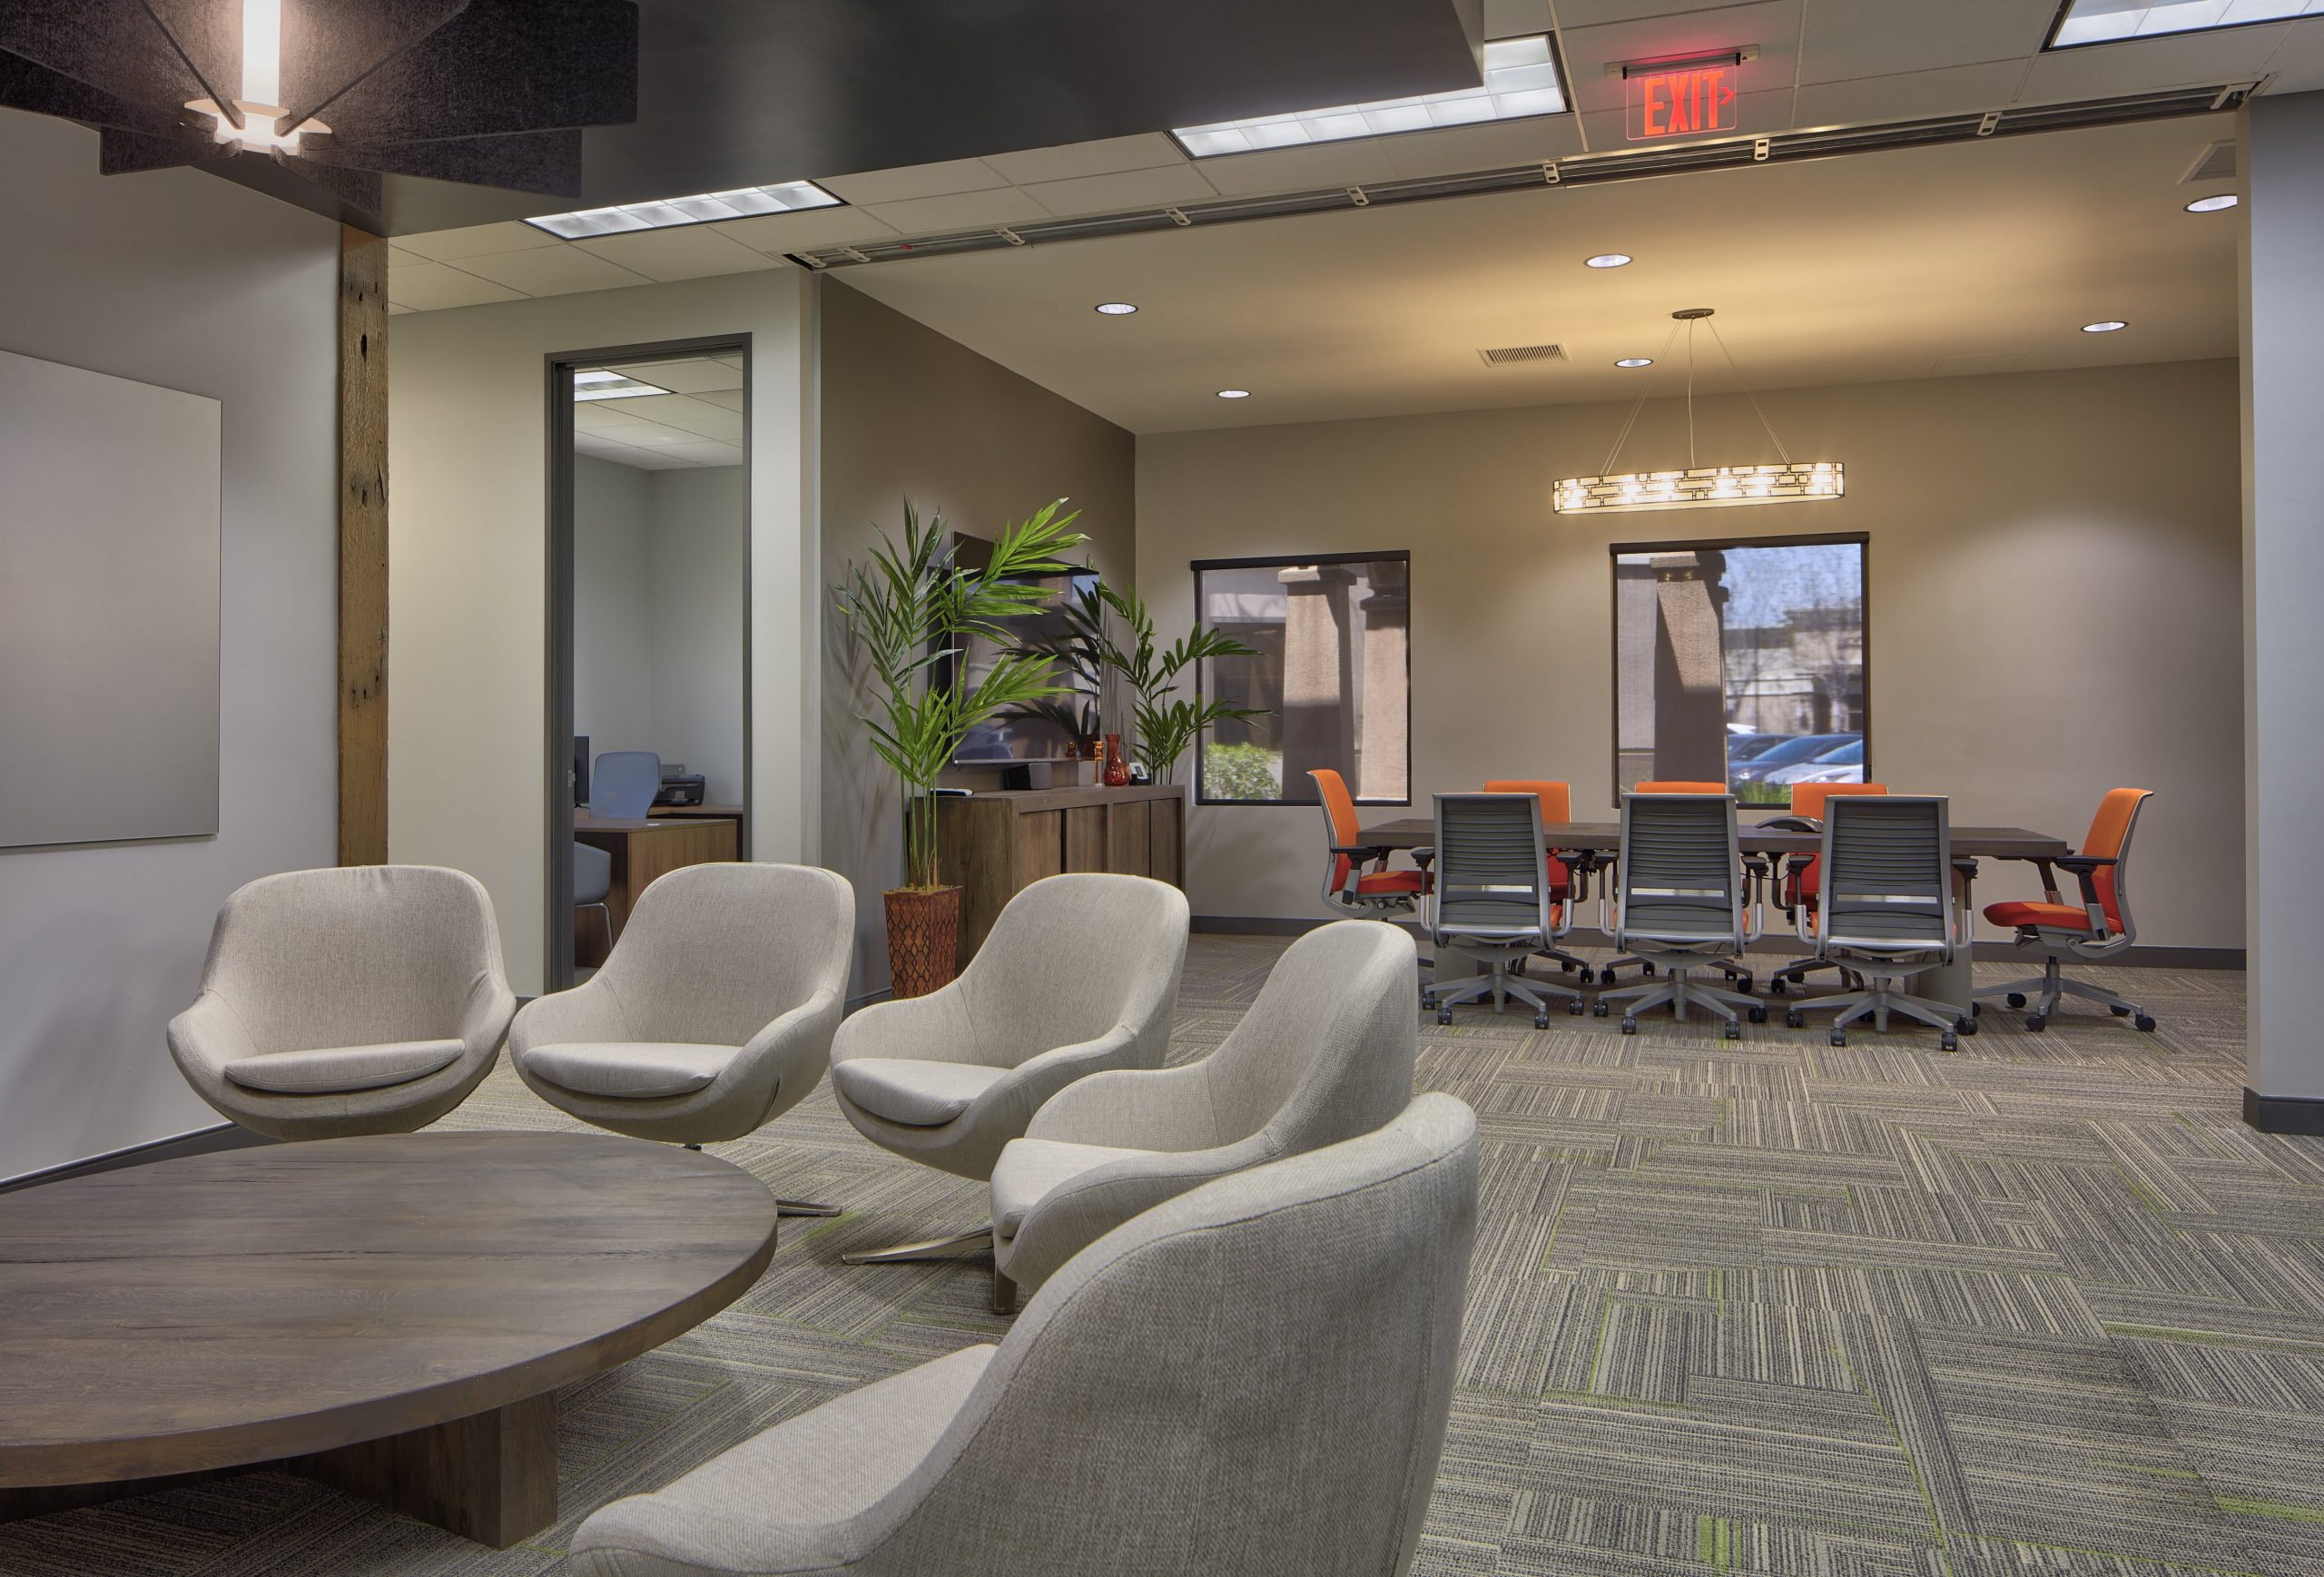 A coworking area with gray chairs in a circle. Behind the chairs, you can see a conference room.